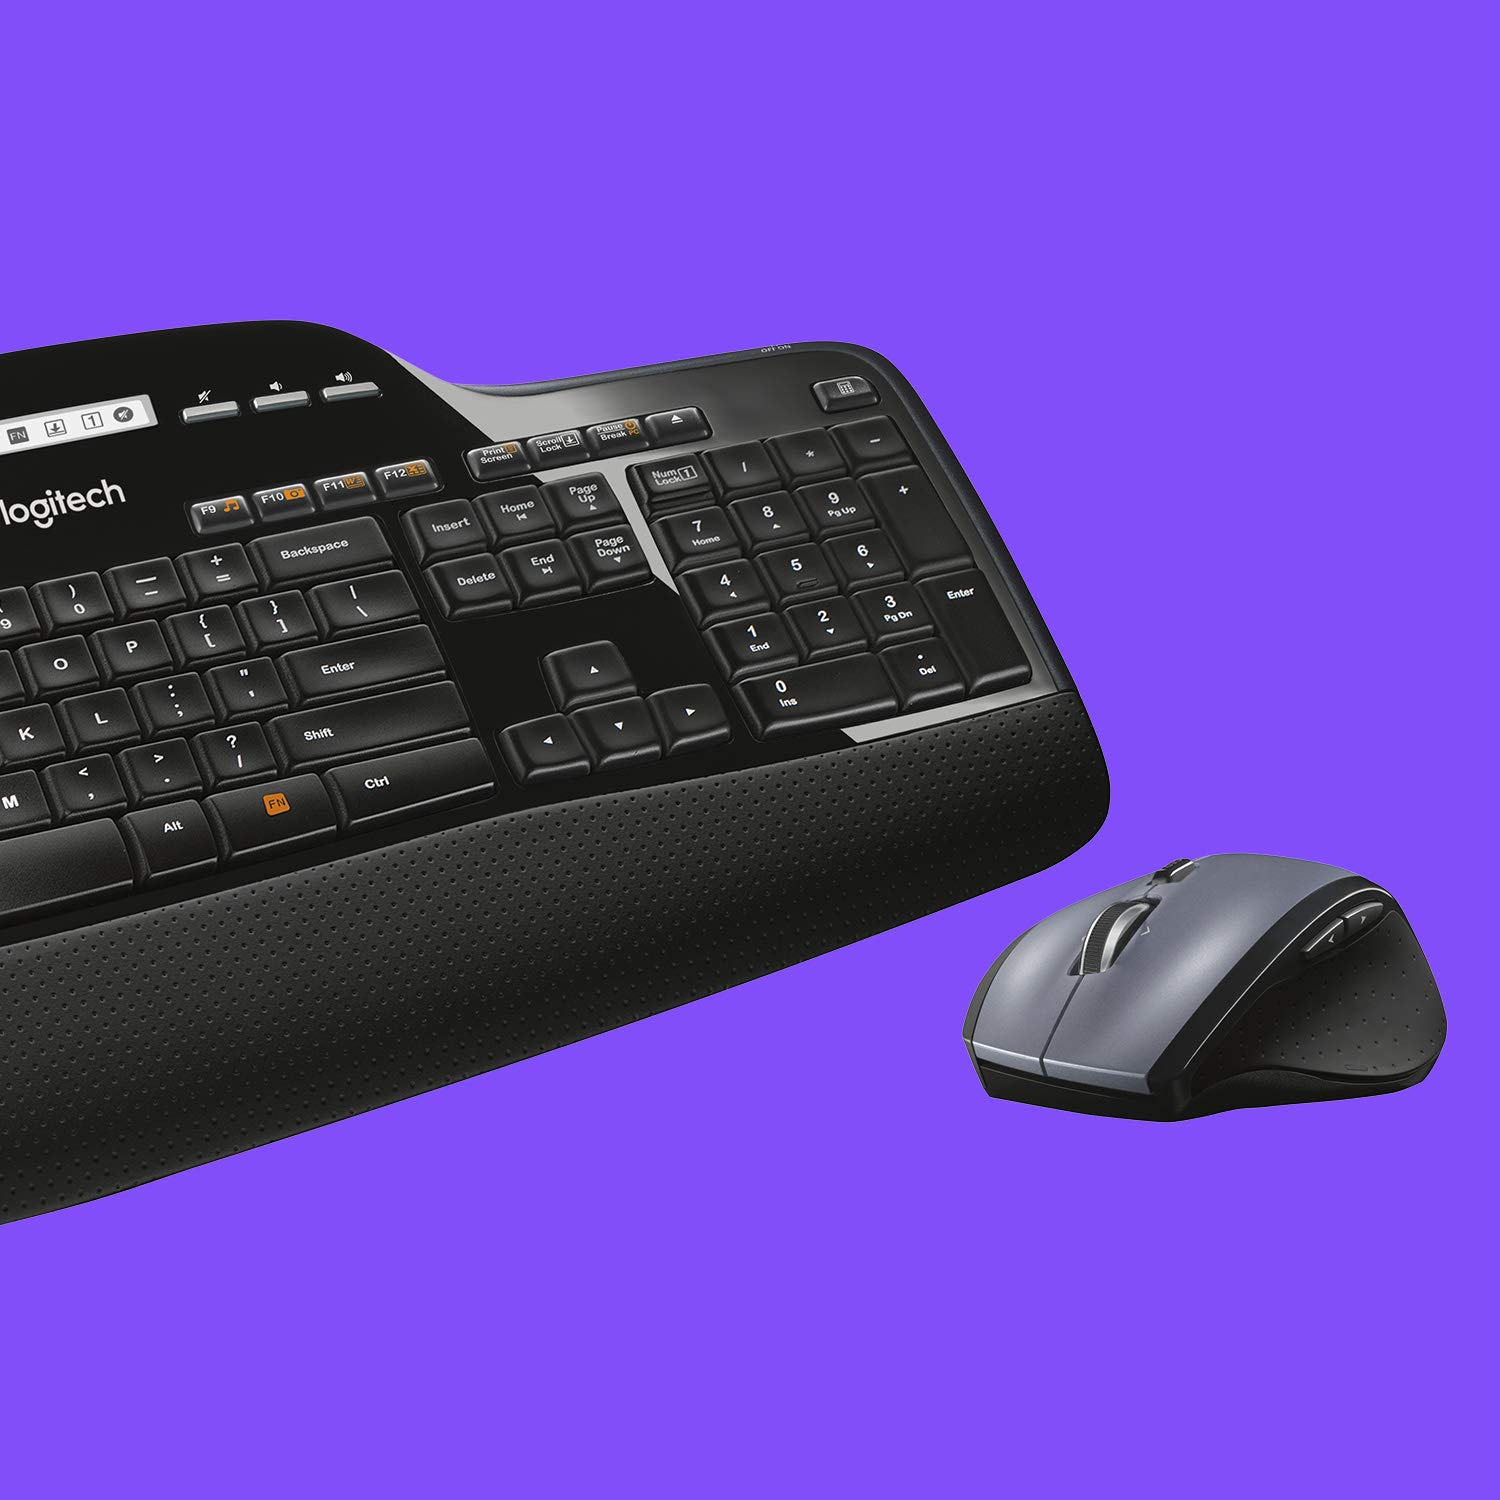 Logitech MK710 Wireless Keyboard and Mouse Combo Built-In LCD Status Dashboard